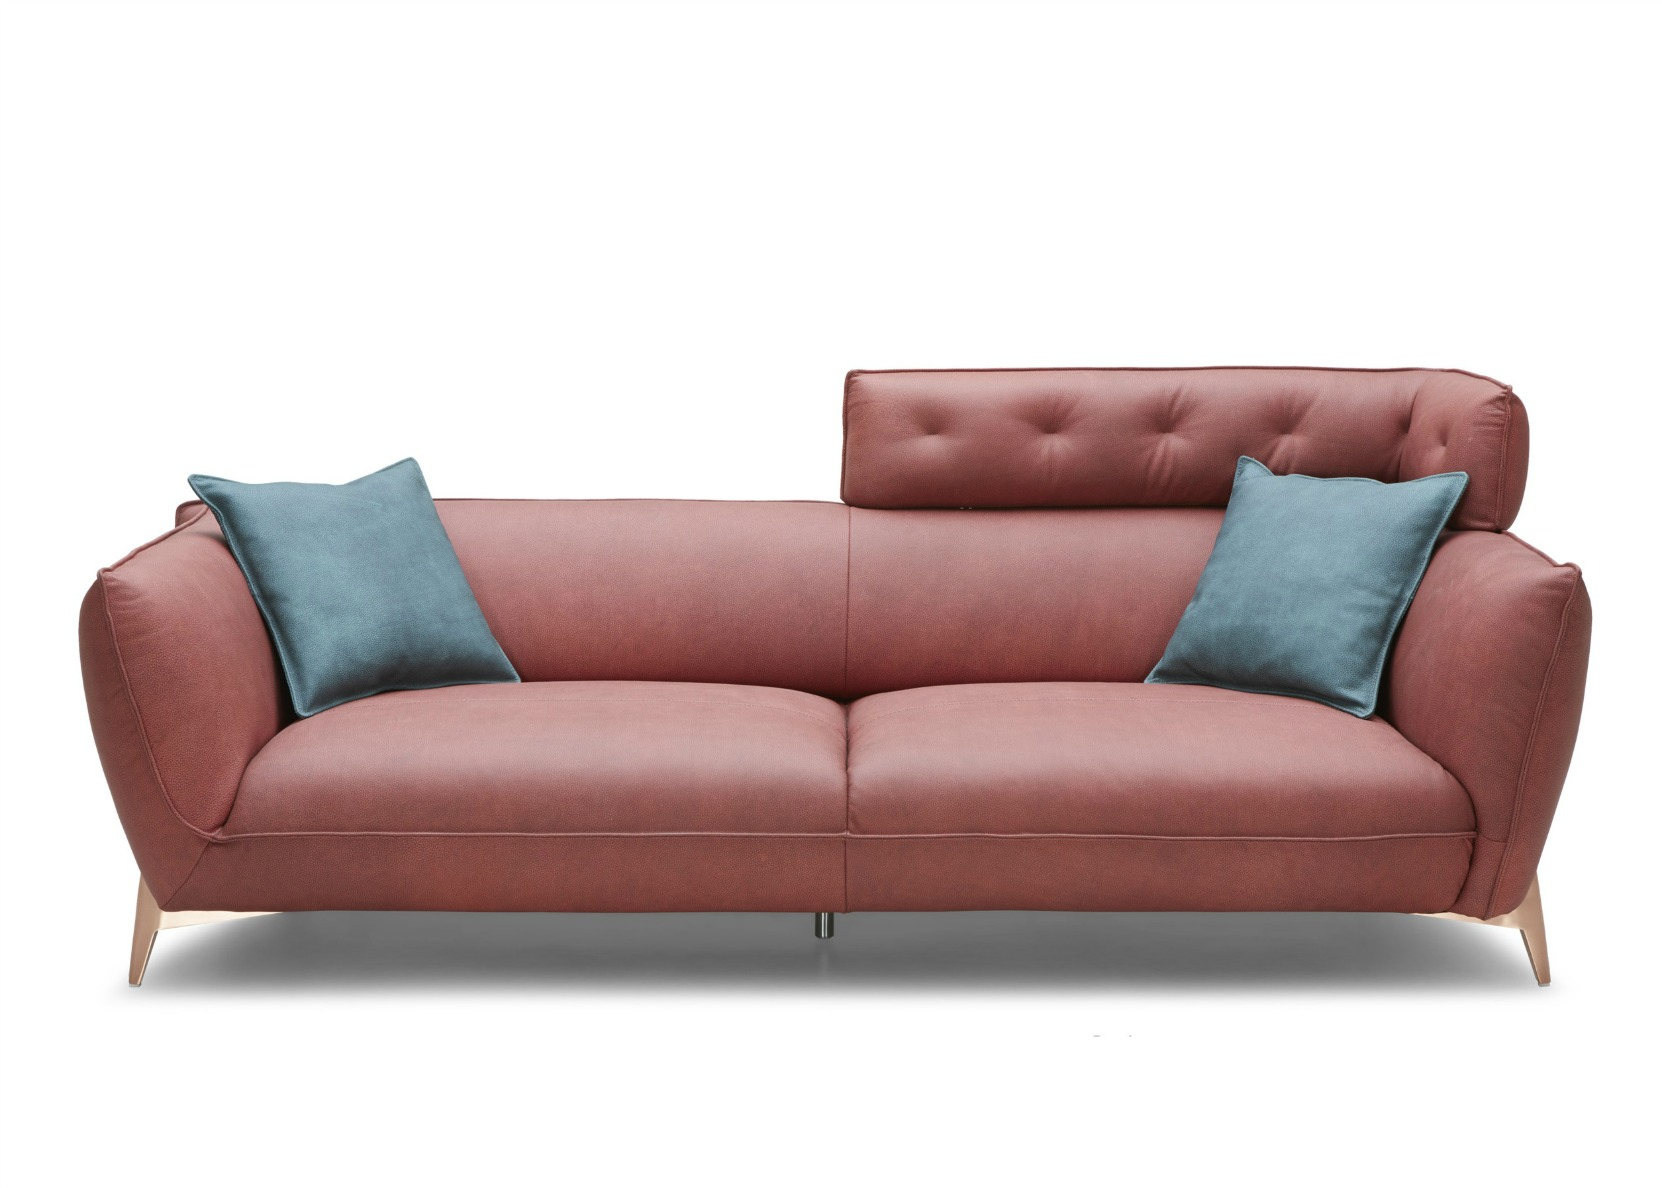 Ruby Leather Sofa With Contemporary Styling Not Just Brown